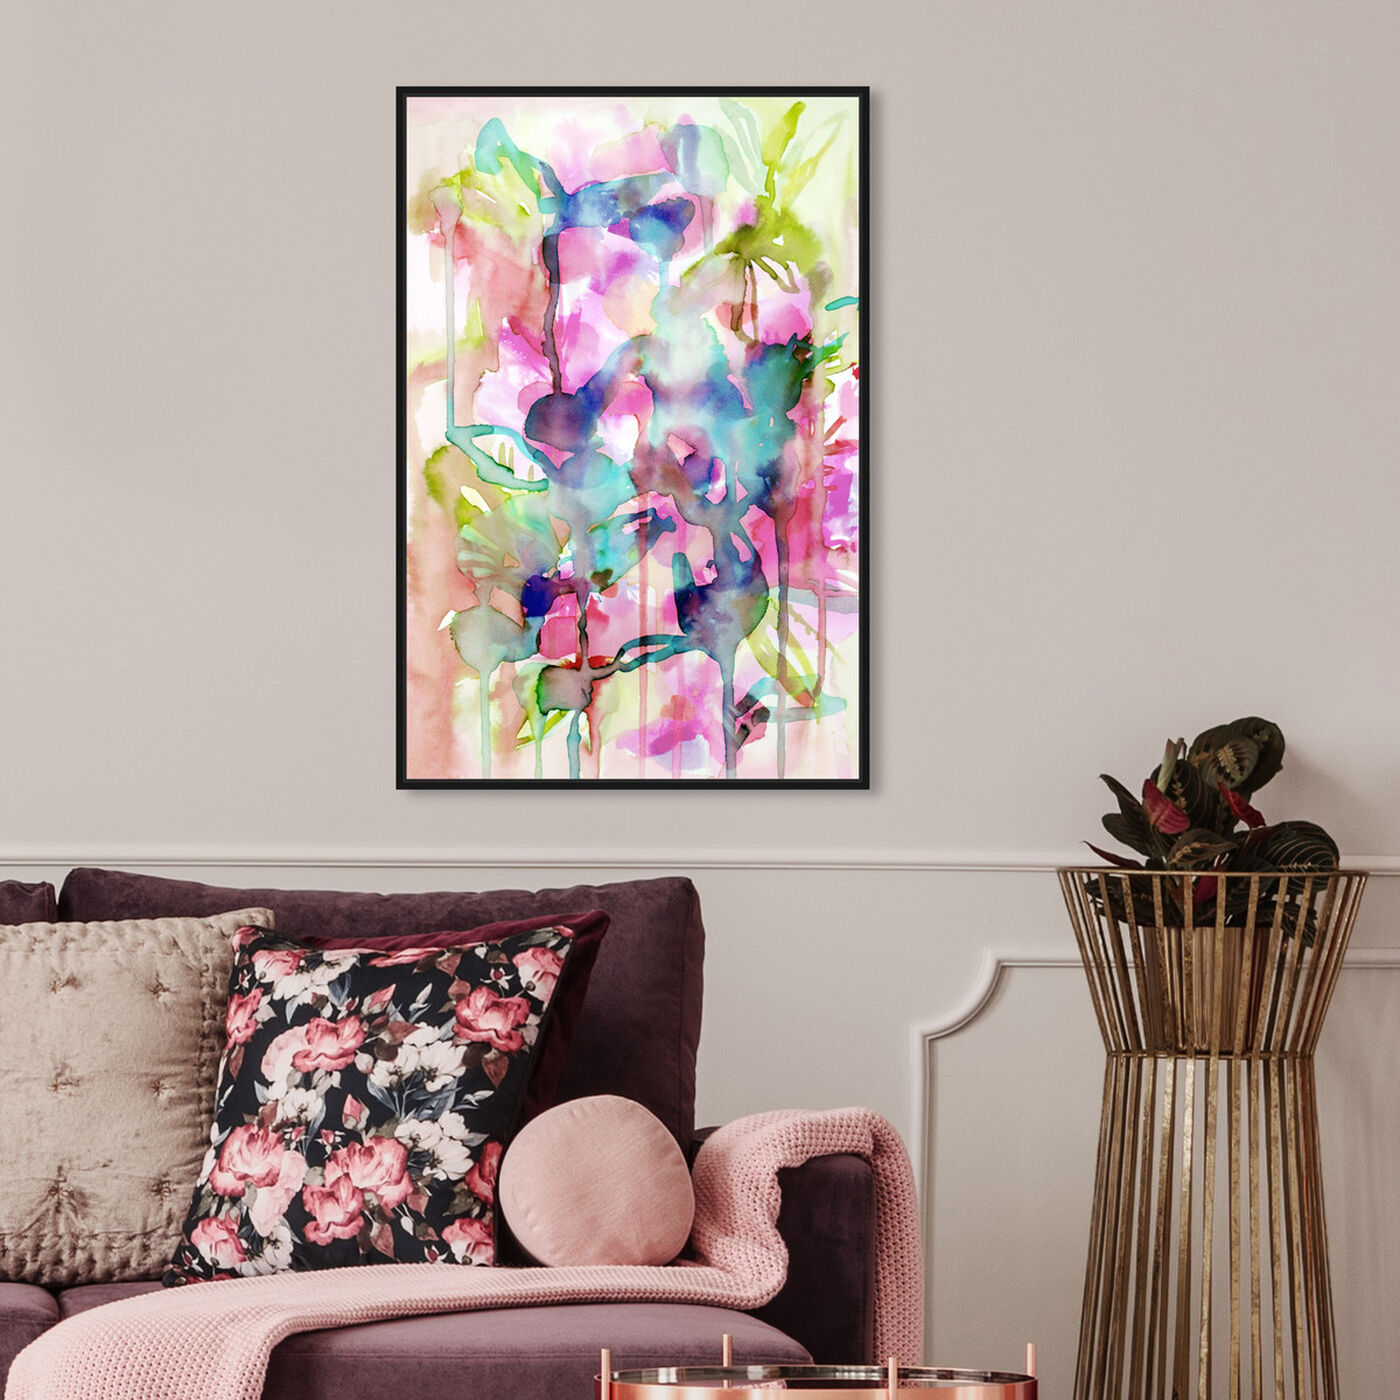 Hanging view of Floral Spring featuring abstract and flowers art.